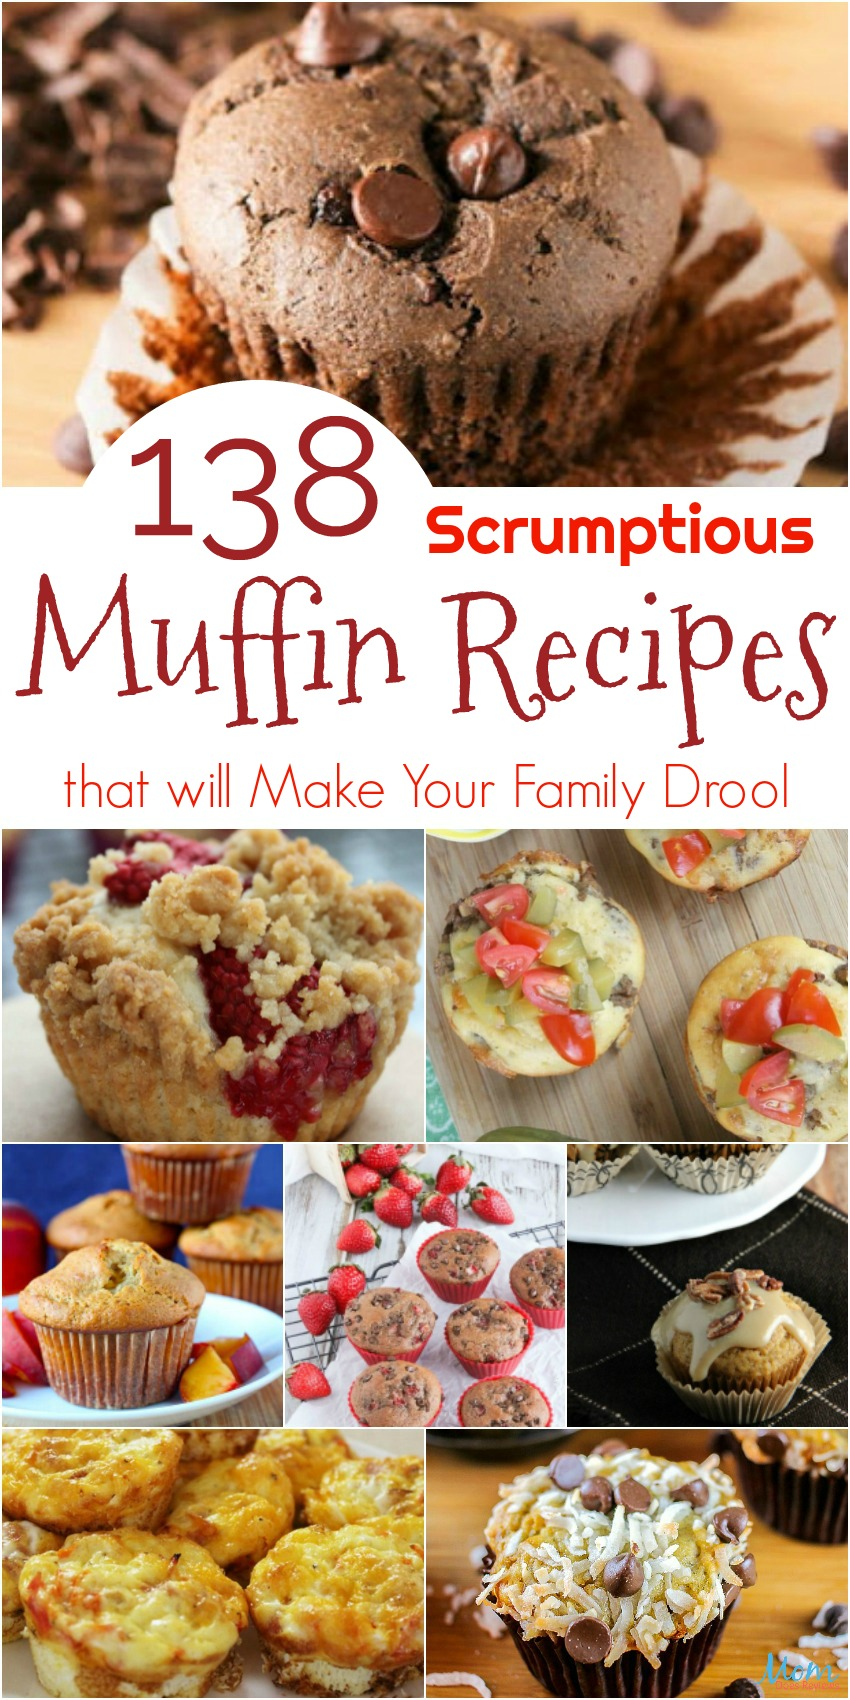 138 Scrumptious Muffin Recipes that will Make Your Family Drool #recipes #muffins #getinmybelly #food #yummy